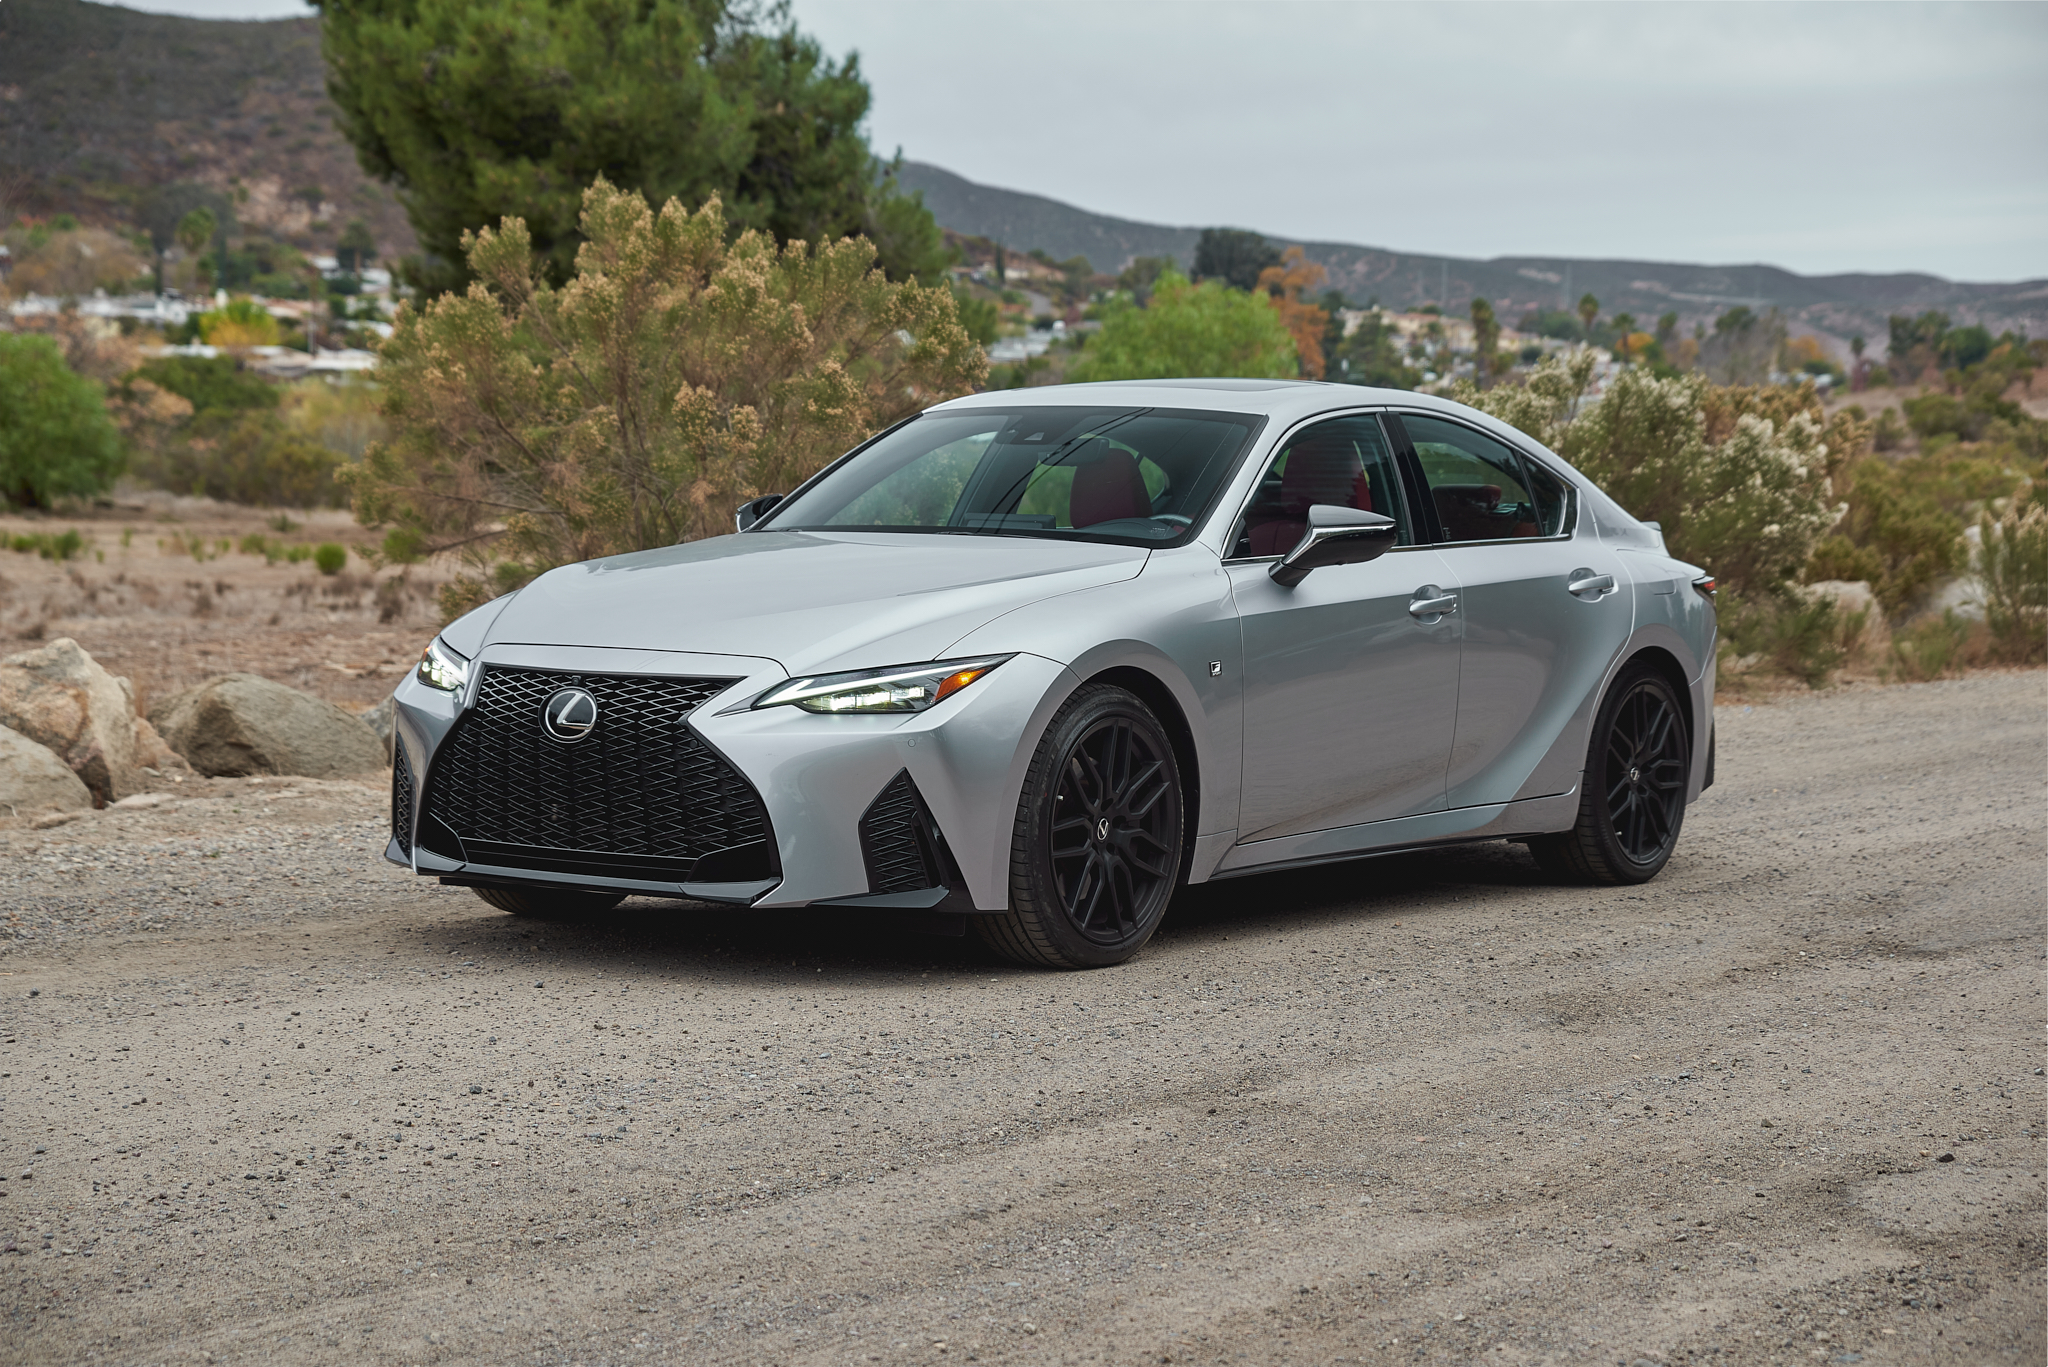 2021 Lexus IS redesigned front end